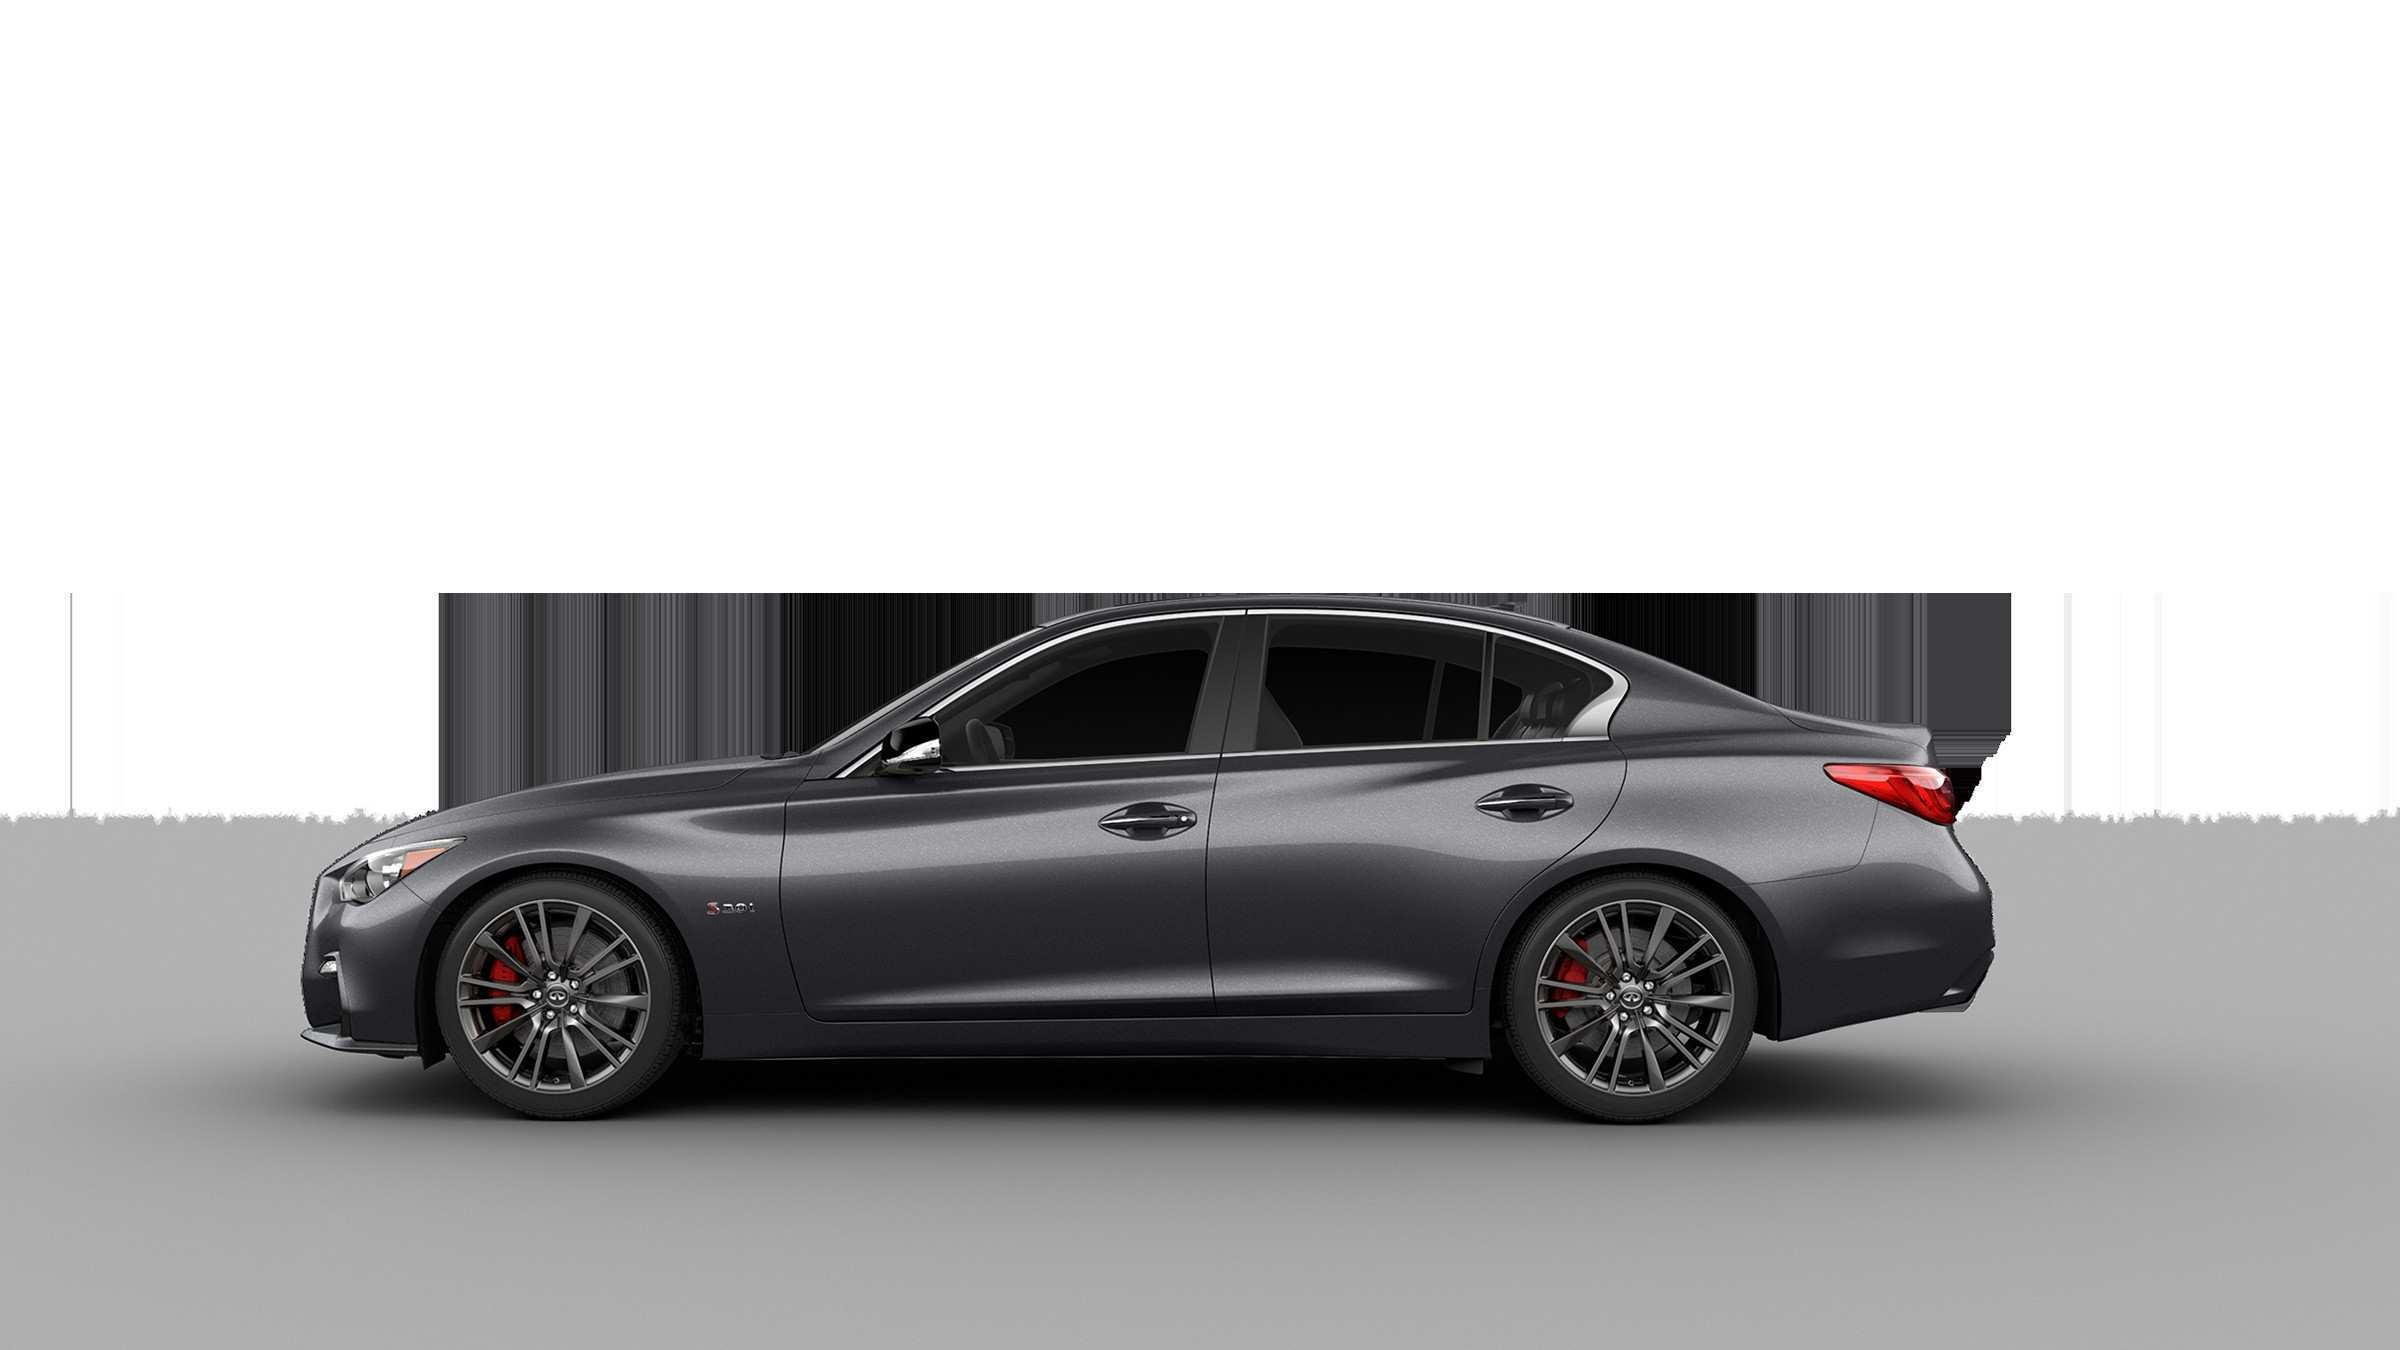 85 The Best 2019 Infiniti Q60 Coupe Convertible Pictures